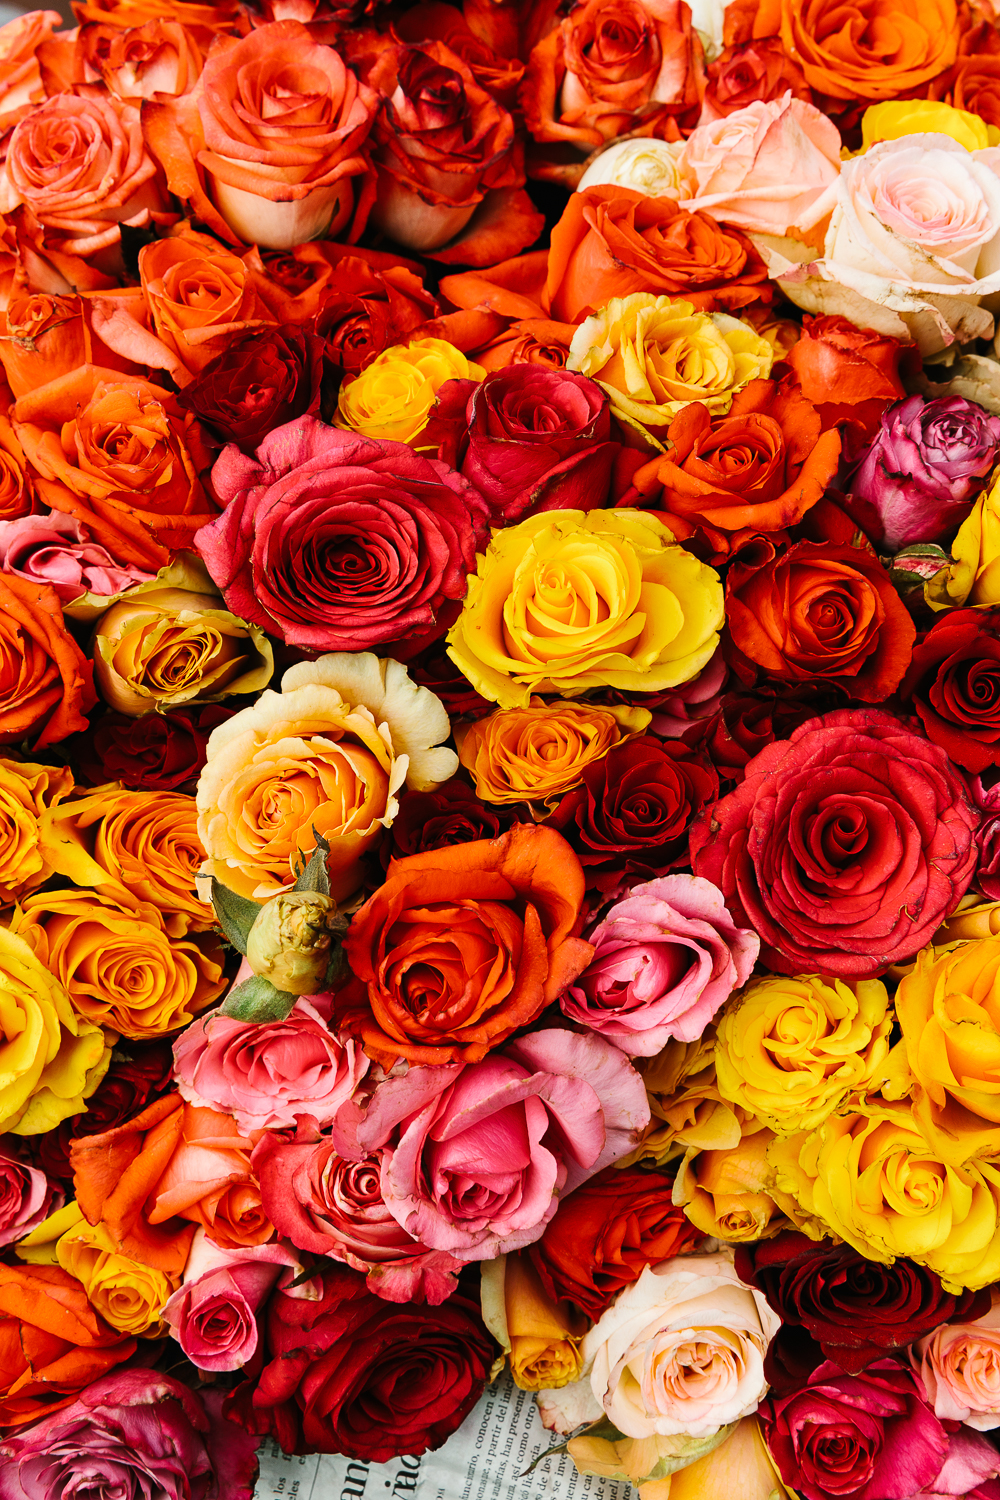 Roses at the mercado